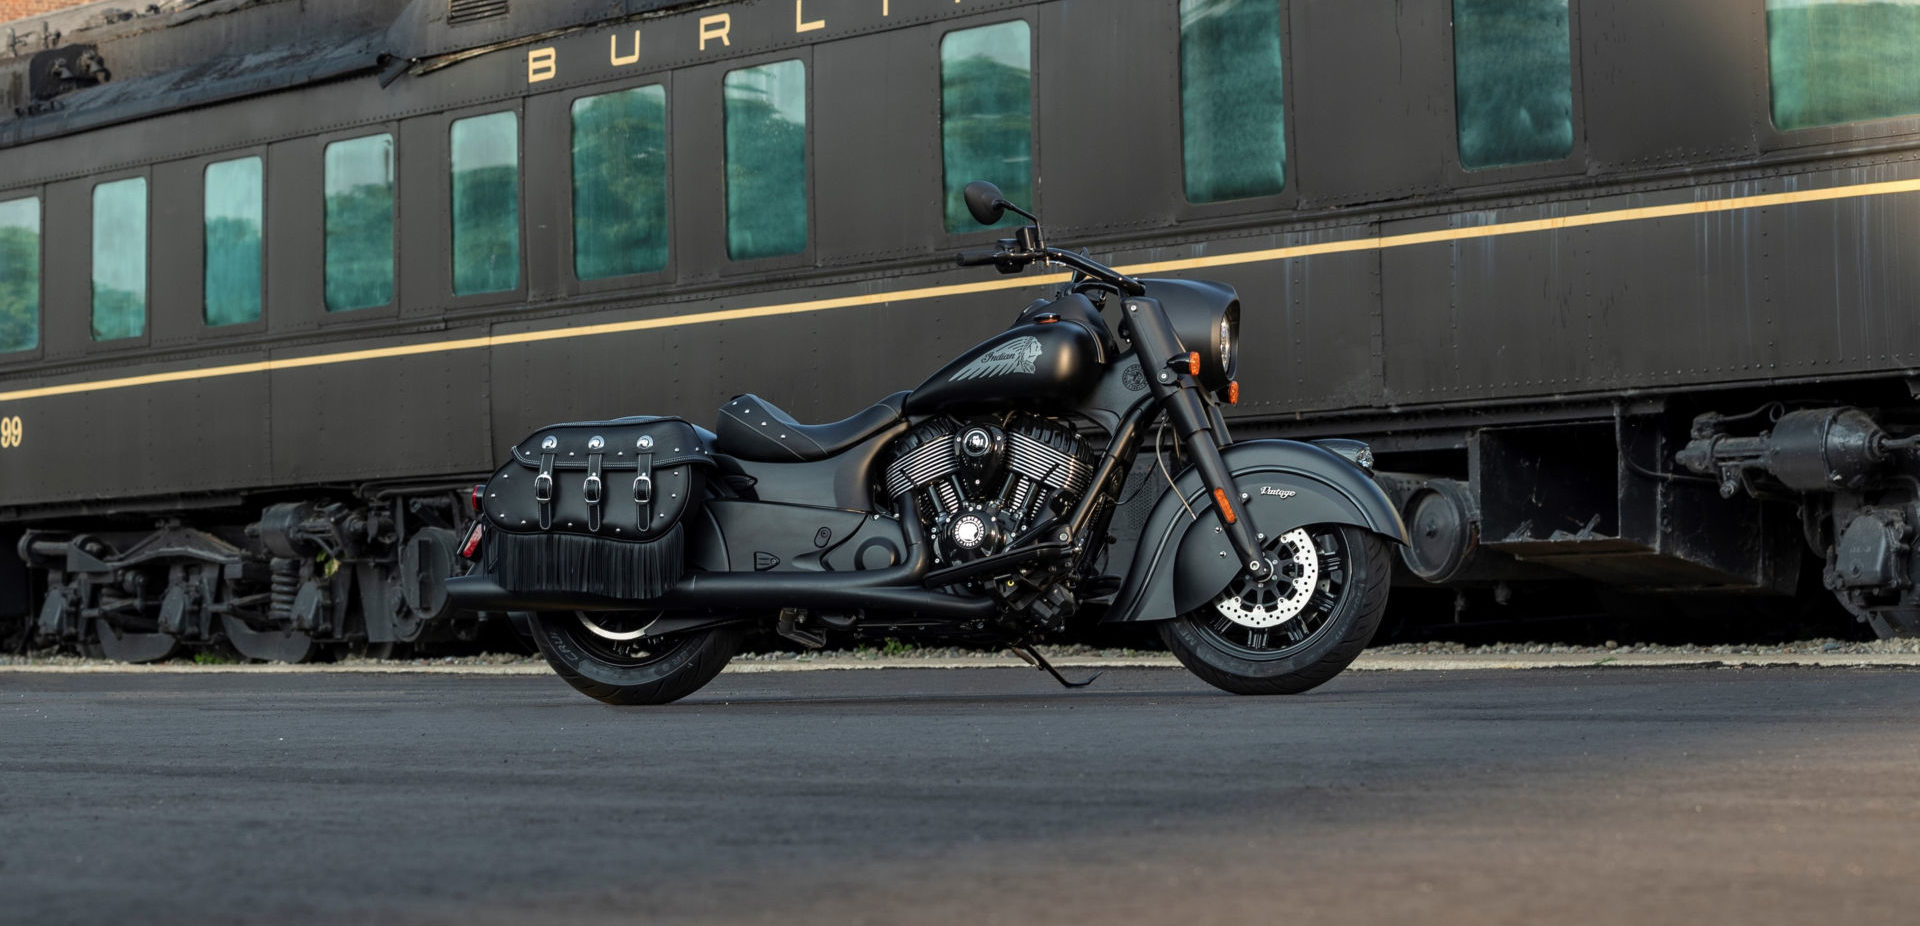 A 2021 Indian Vintage Dark Horse. Photo courtesy Indian Motorcycle.